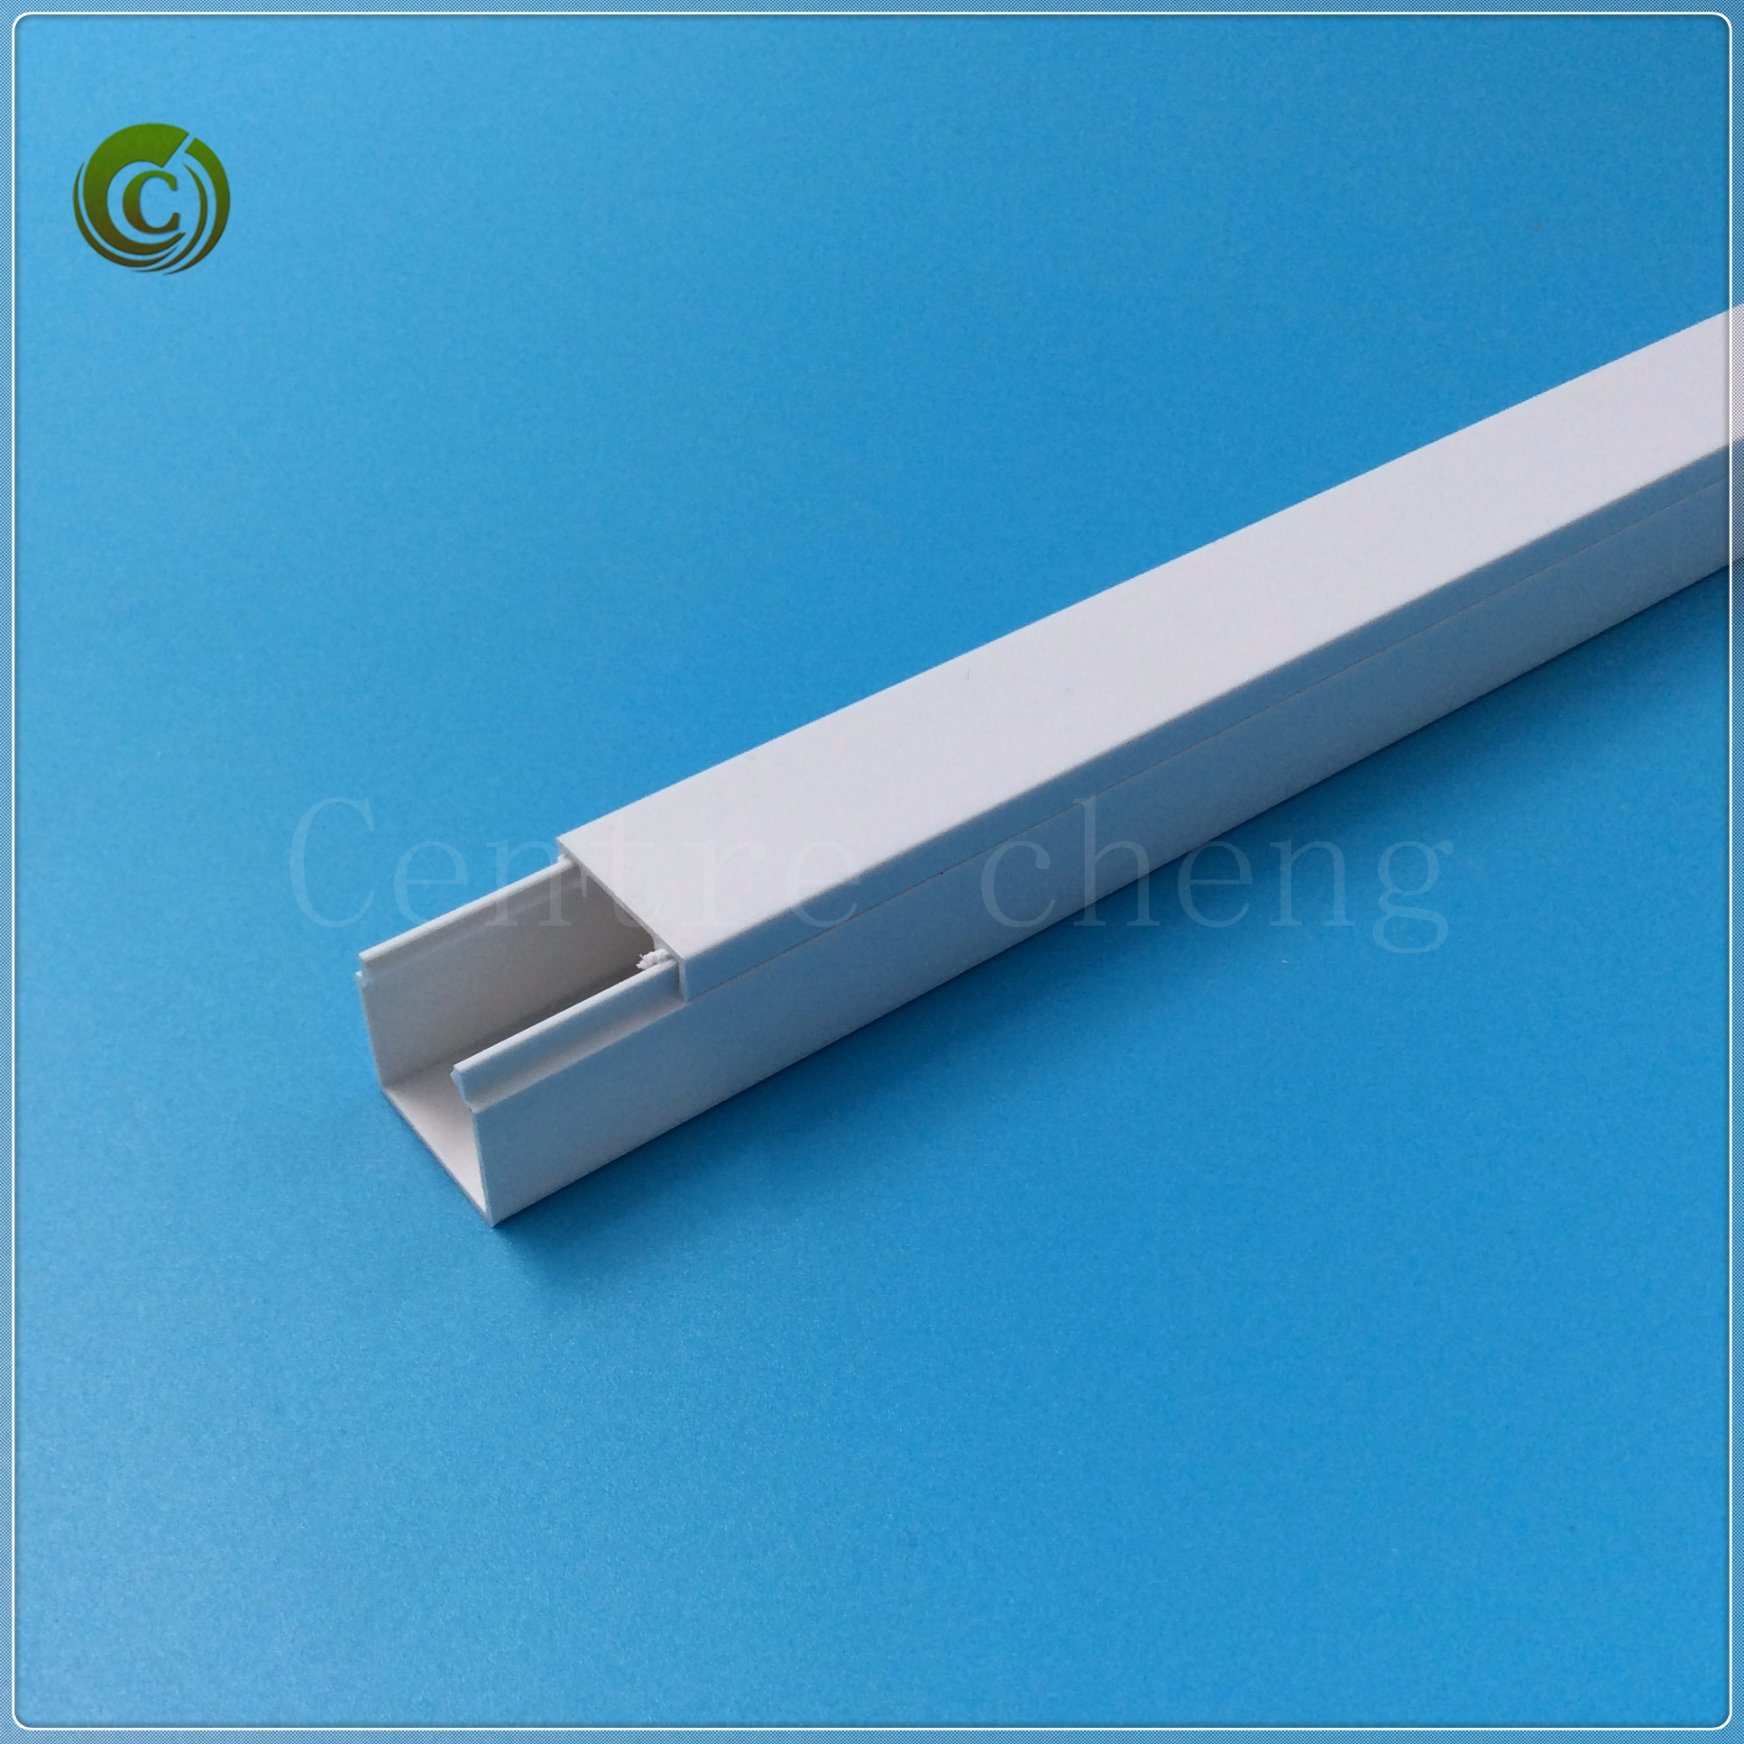 China 2018 Wiring Accessories Plastic Trunking Pvc Cable 1616mm Management